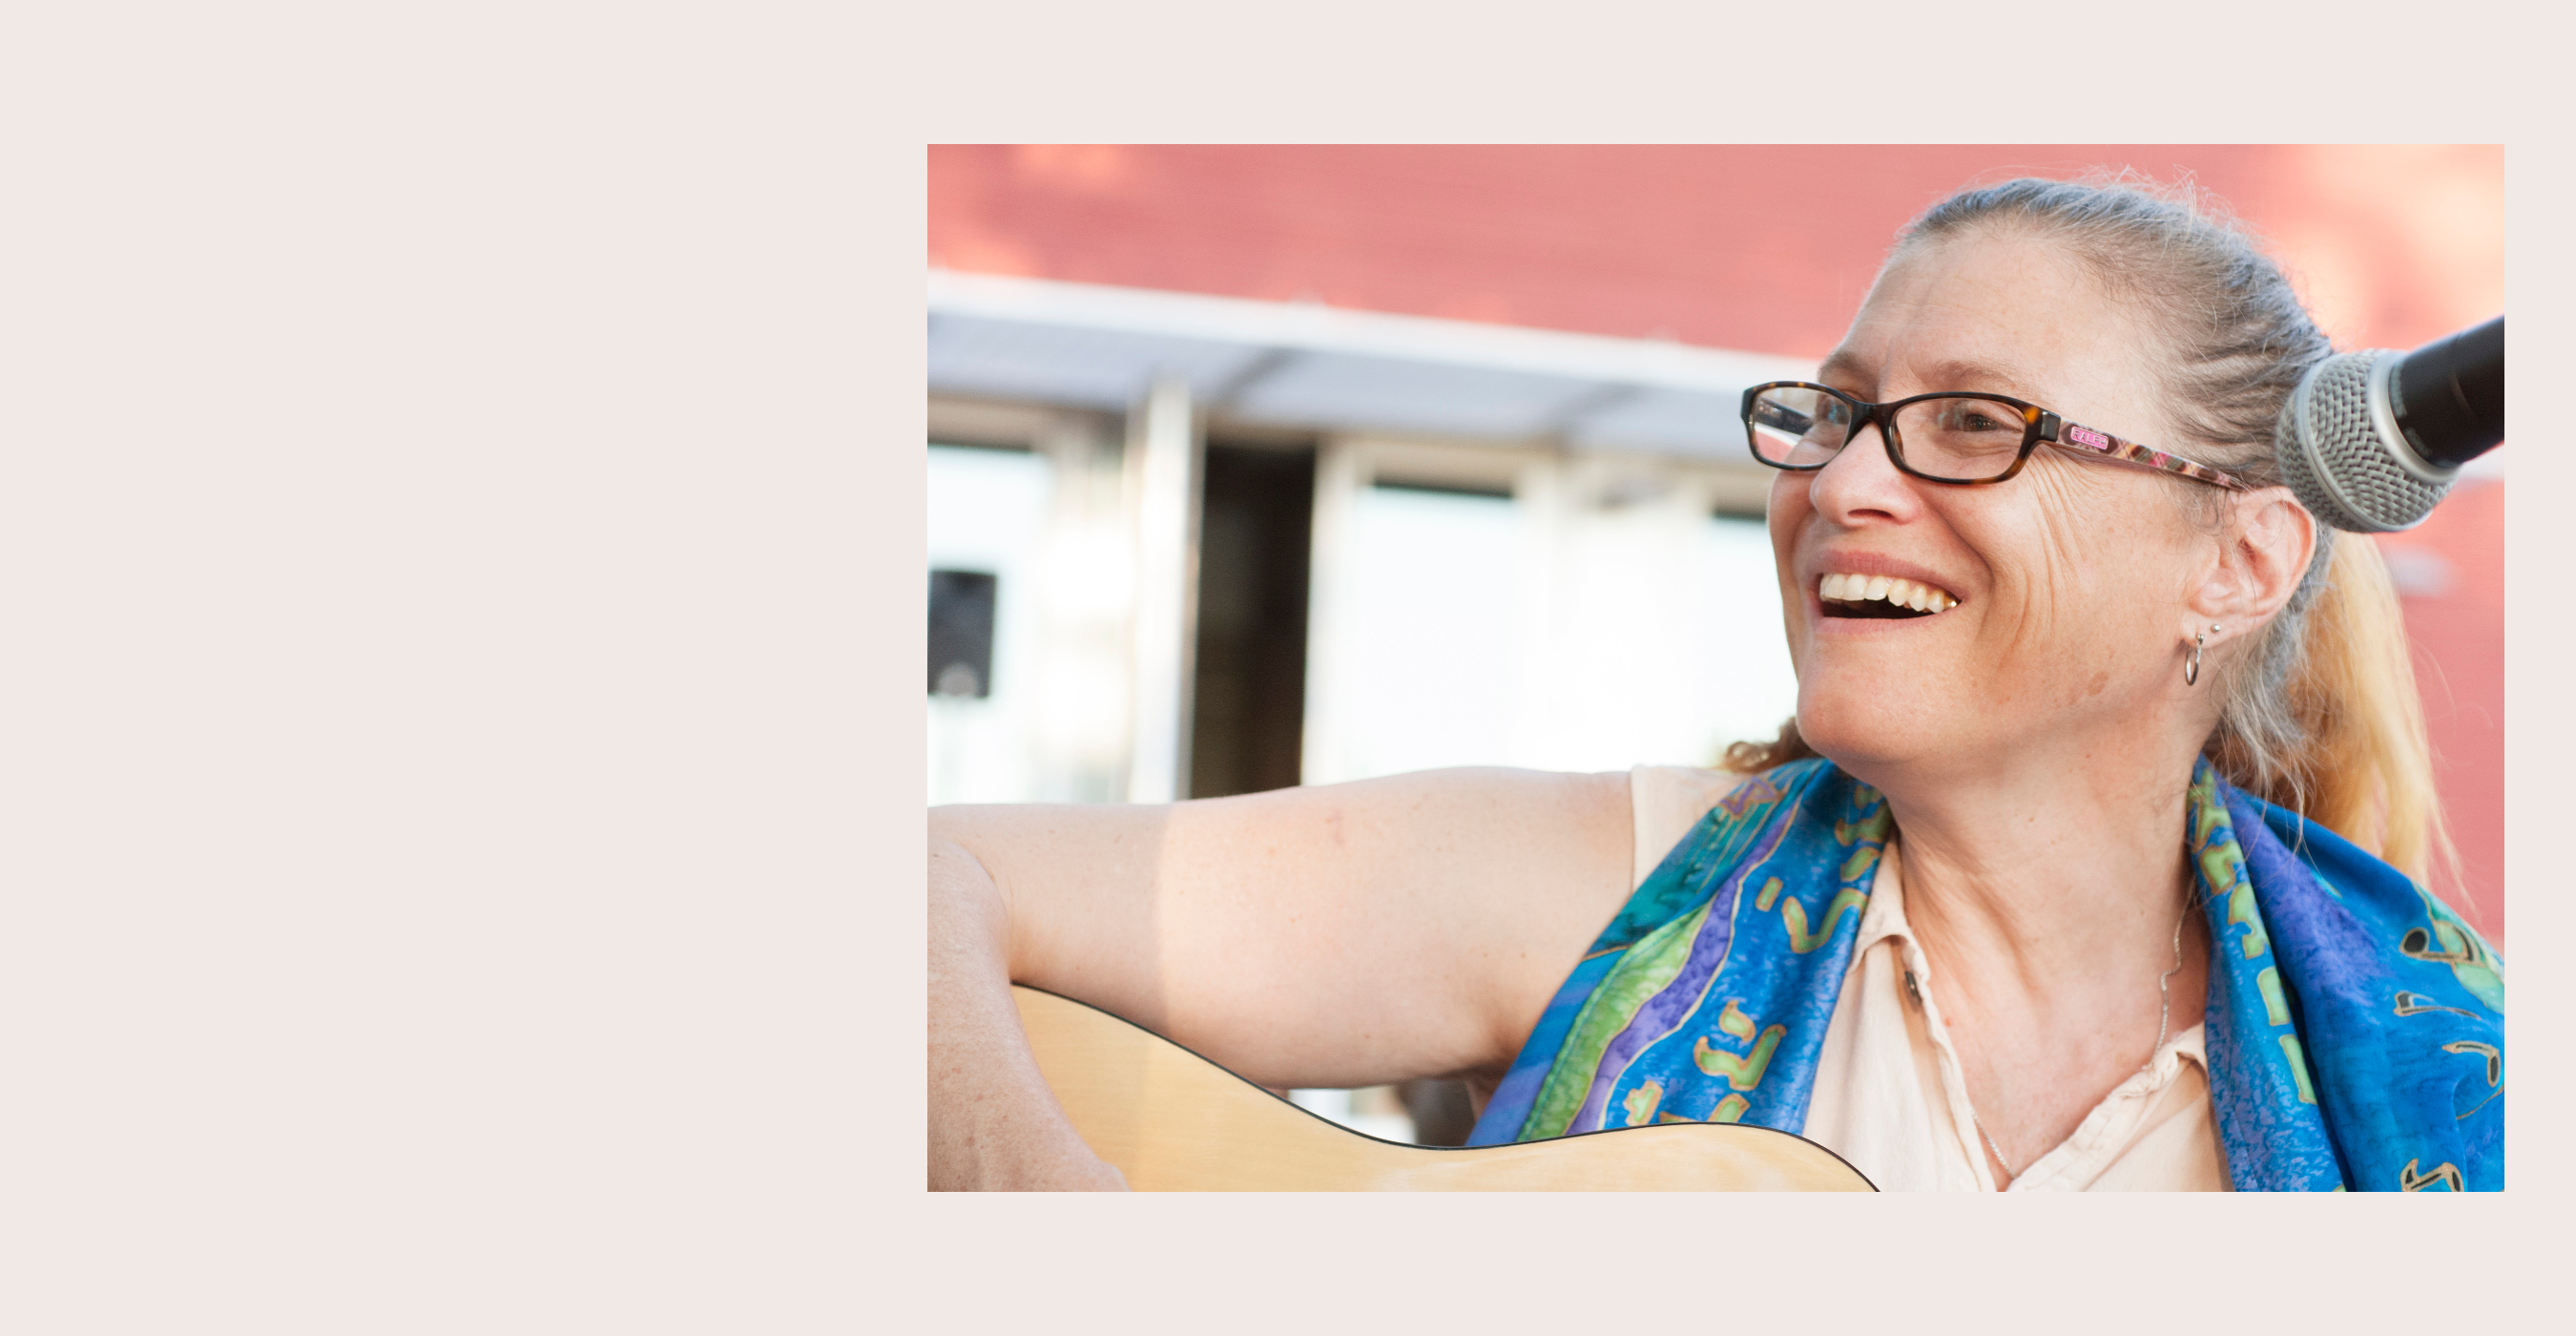 """<a href=""""https://www.beaconhebrewalliance.org/event/online-morning-meditation-with-cantor-ellen.html""""                                     target=""""_blank"""">                                                                 <span class=""""slider_title"""">                                     Morning Meditation with Cantor Ellen                                </span>                                                                 </a>                                                                                                                                                                                       <span class=""""slider_description"""">Join Cantor Ellen for a 25 minute virtual gathering through Zoom to sing, chant and center ourselves in these uncertain times</span>                                                                                     <a href=""""https://www.beaconhebrewalliance.org/event/online-morning-meditation-with-cantor-ellen.html"""" class=""""slider_link""""                             target=""""_blank"""">                             Get the Link                            </a>"""